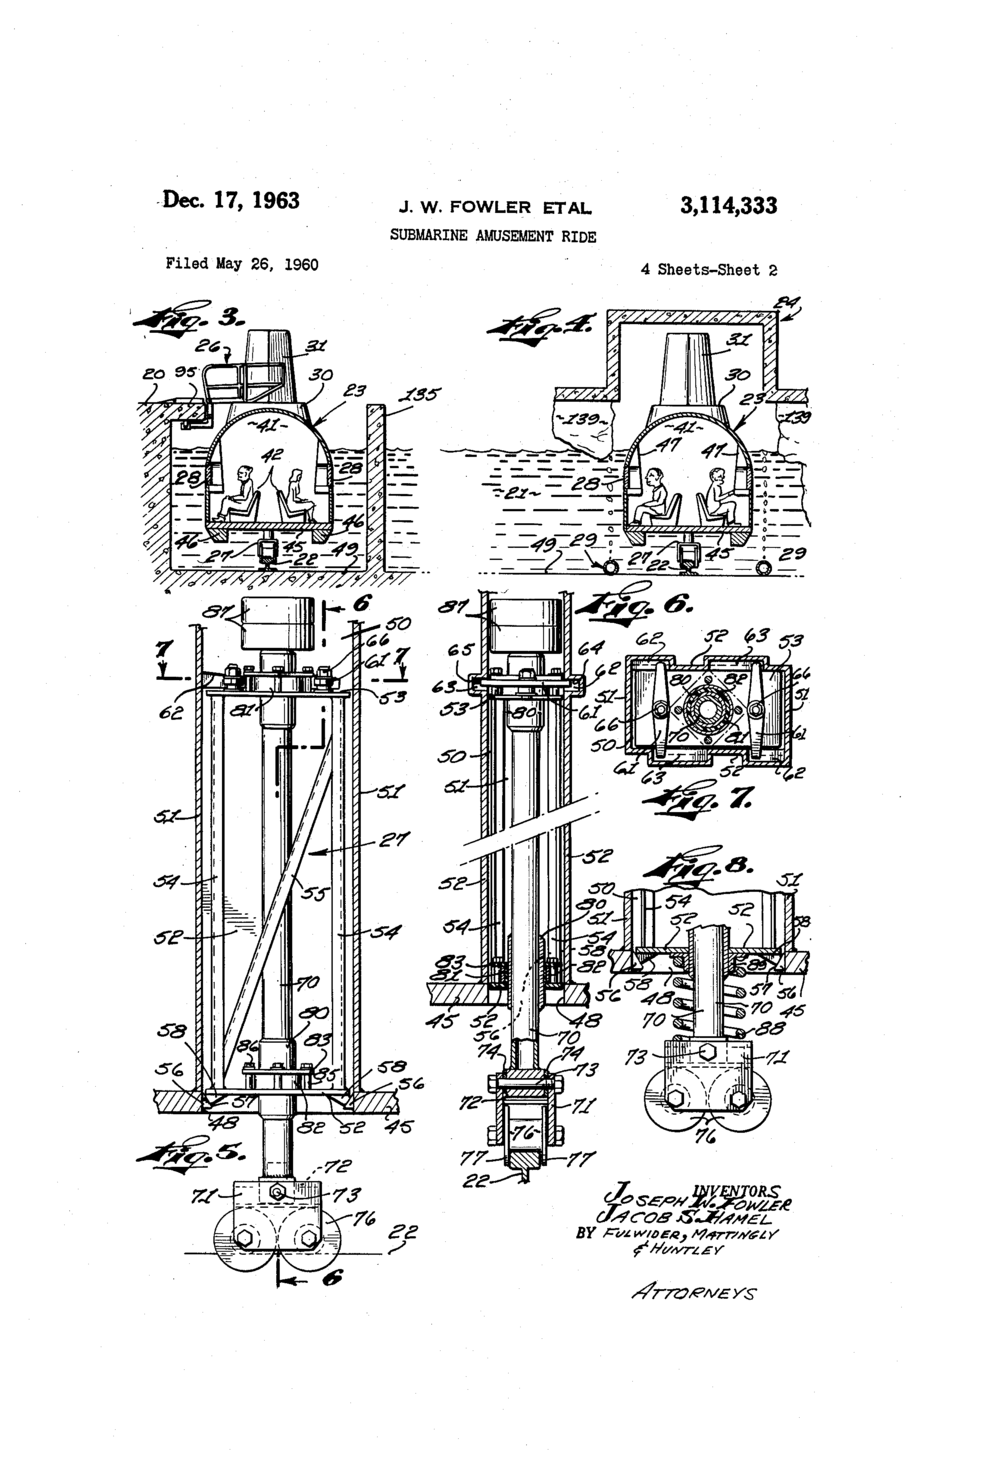 Submarine Amusement Ride Patent Illustration from  Google Patents.